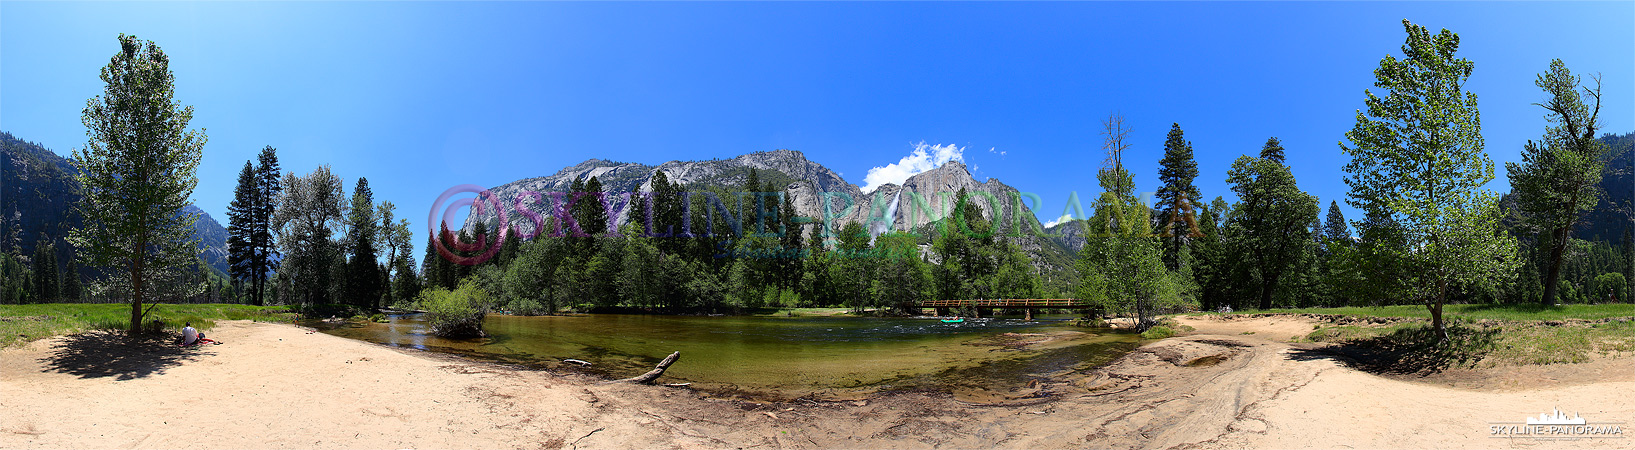 Bilder aus dem Yosemite Nationalpark - Bei schönem Wetter und warmen Temperaturen kann man an den Ufern des Merced Rivers wunderbar picknicken...